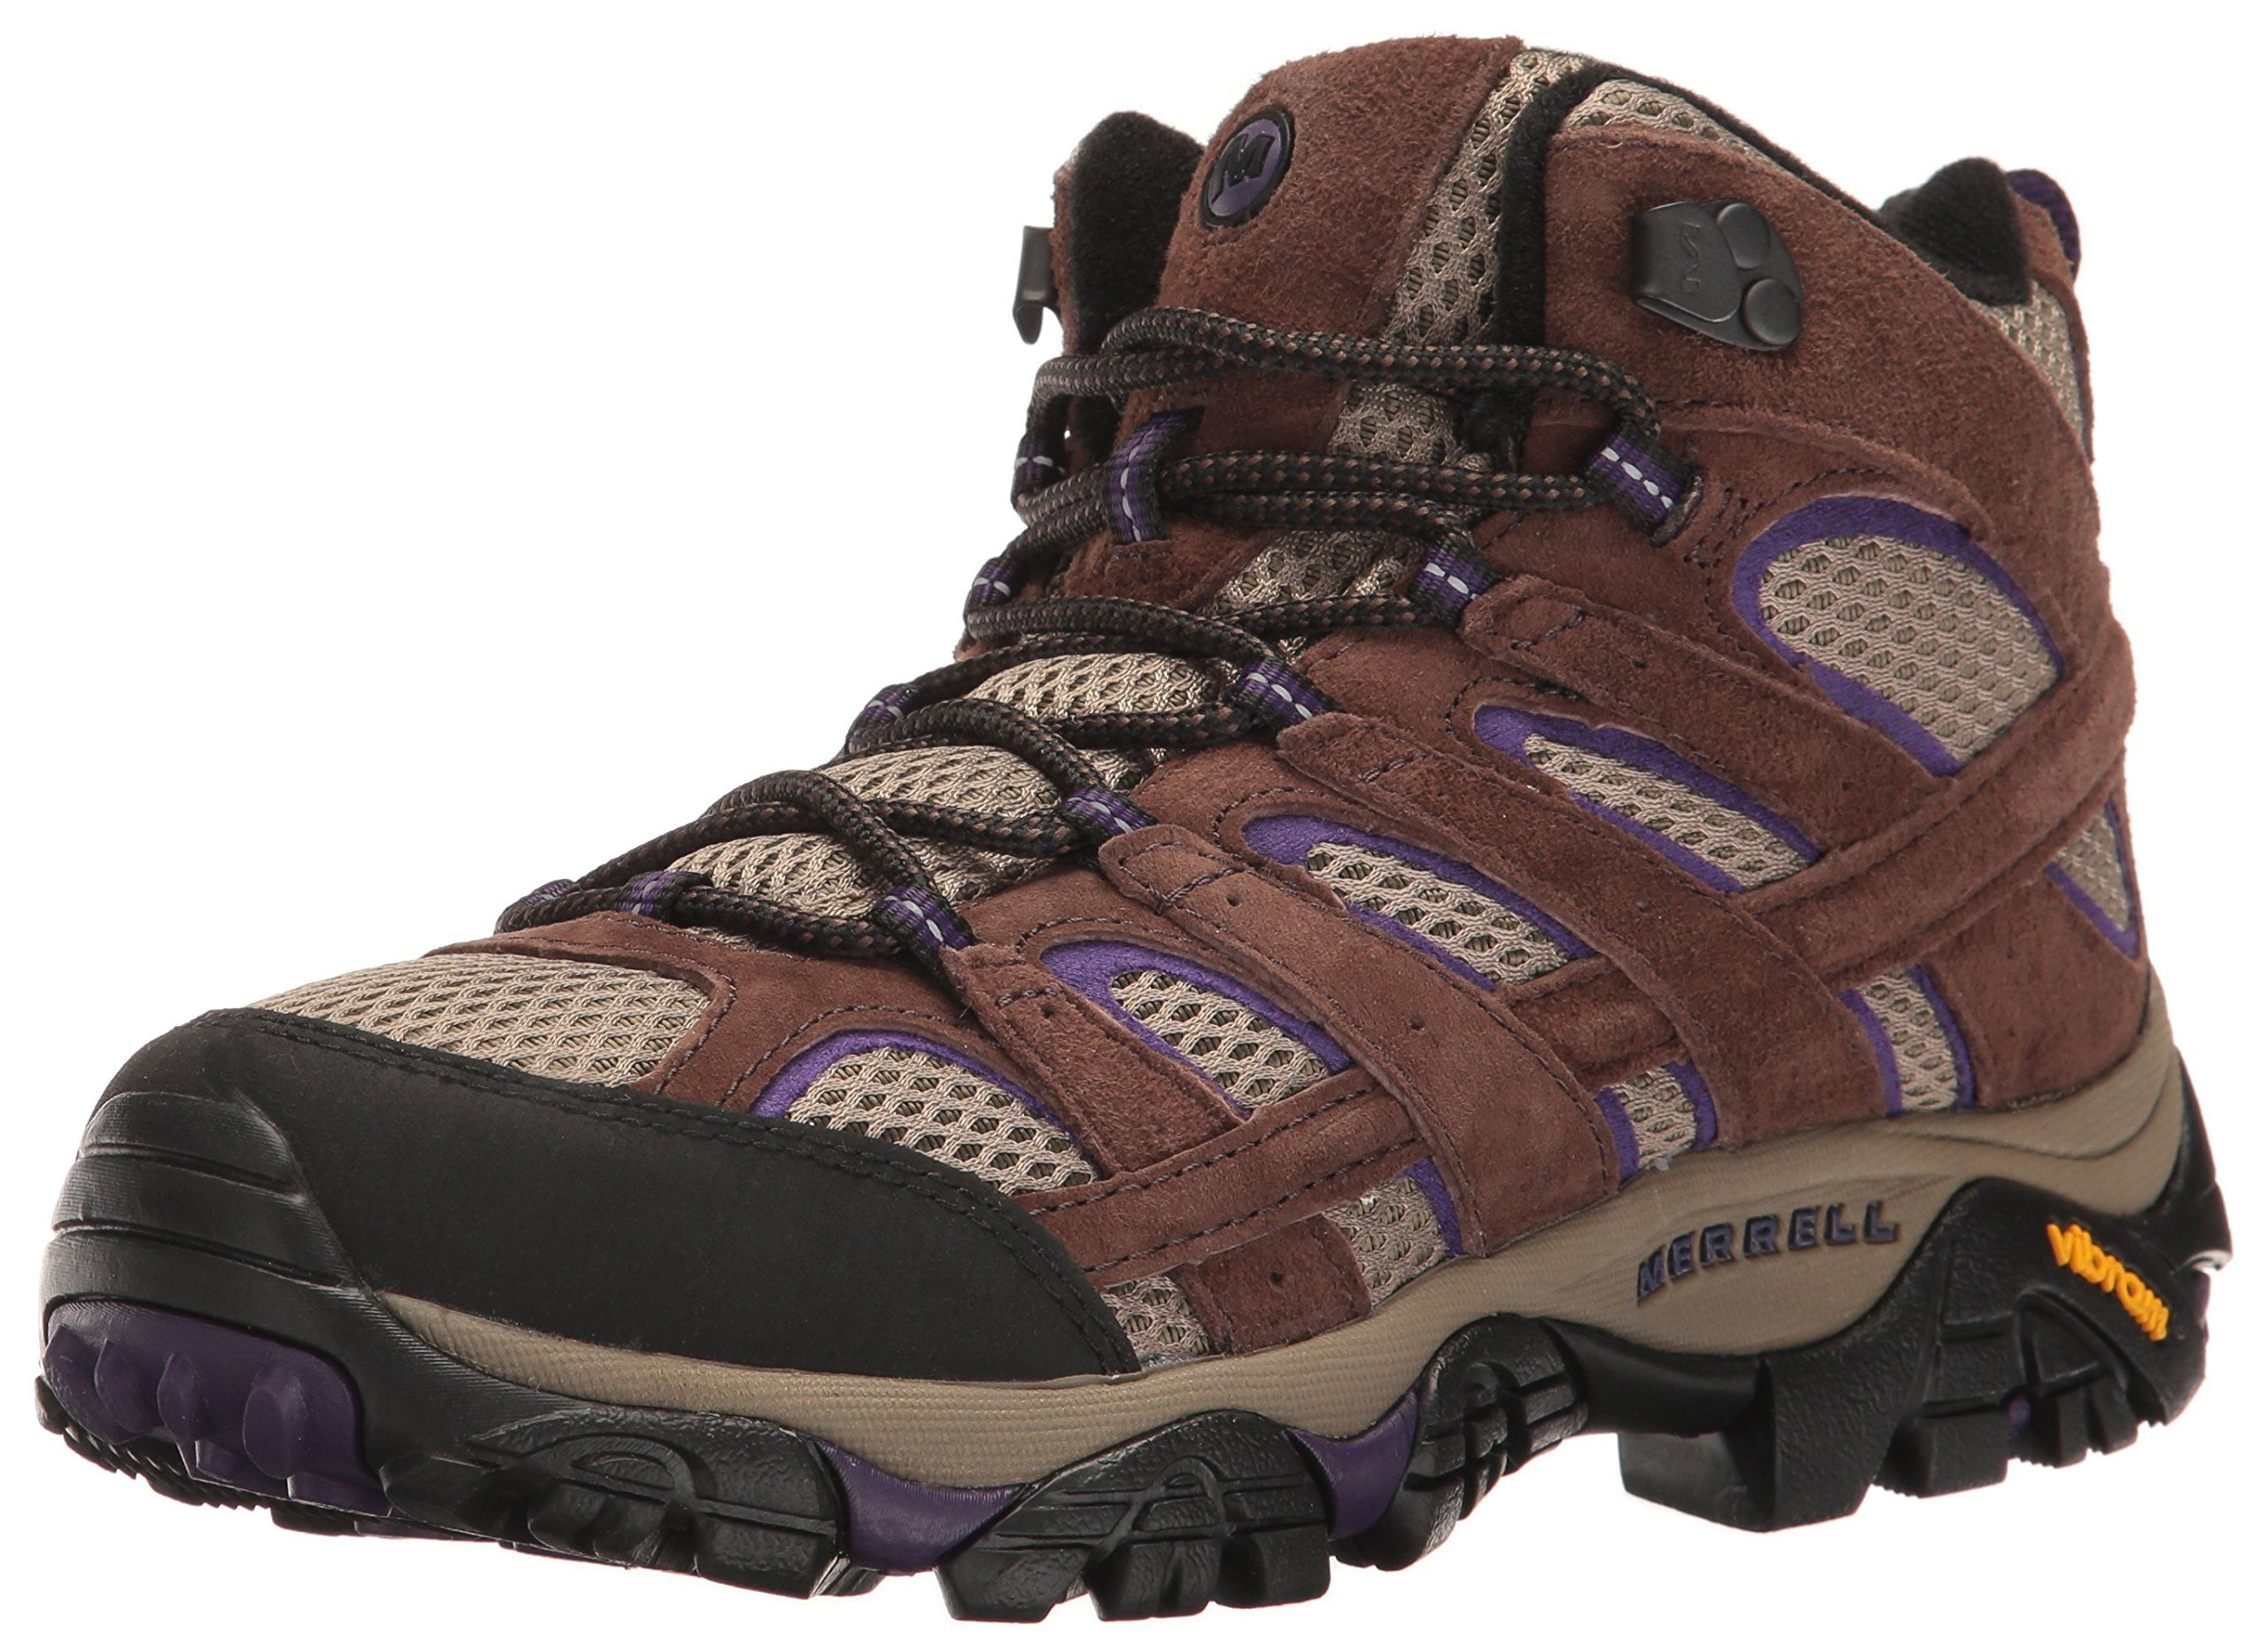 Merrell Women's Moab 2 Vent Mid Hiking Boot, Bracken/Purple, 5 W US